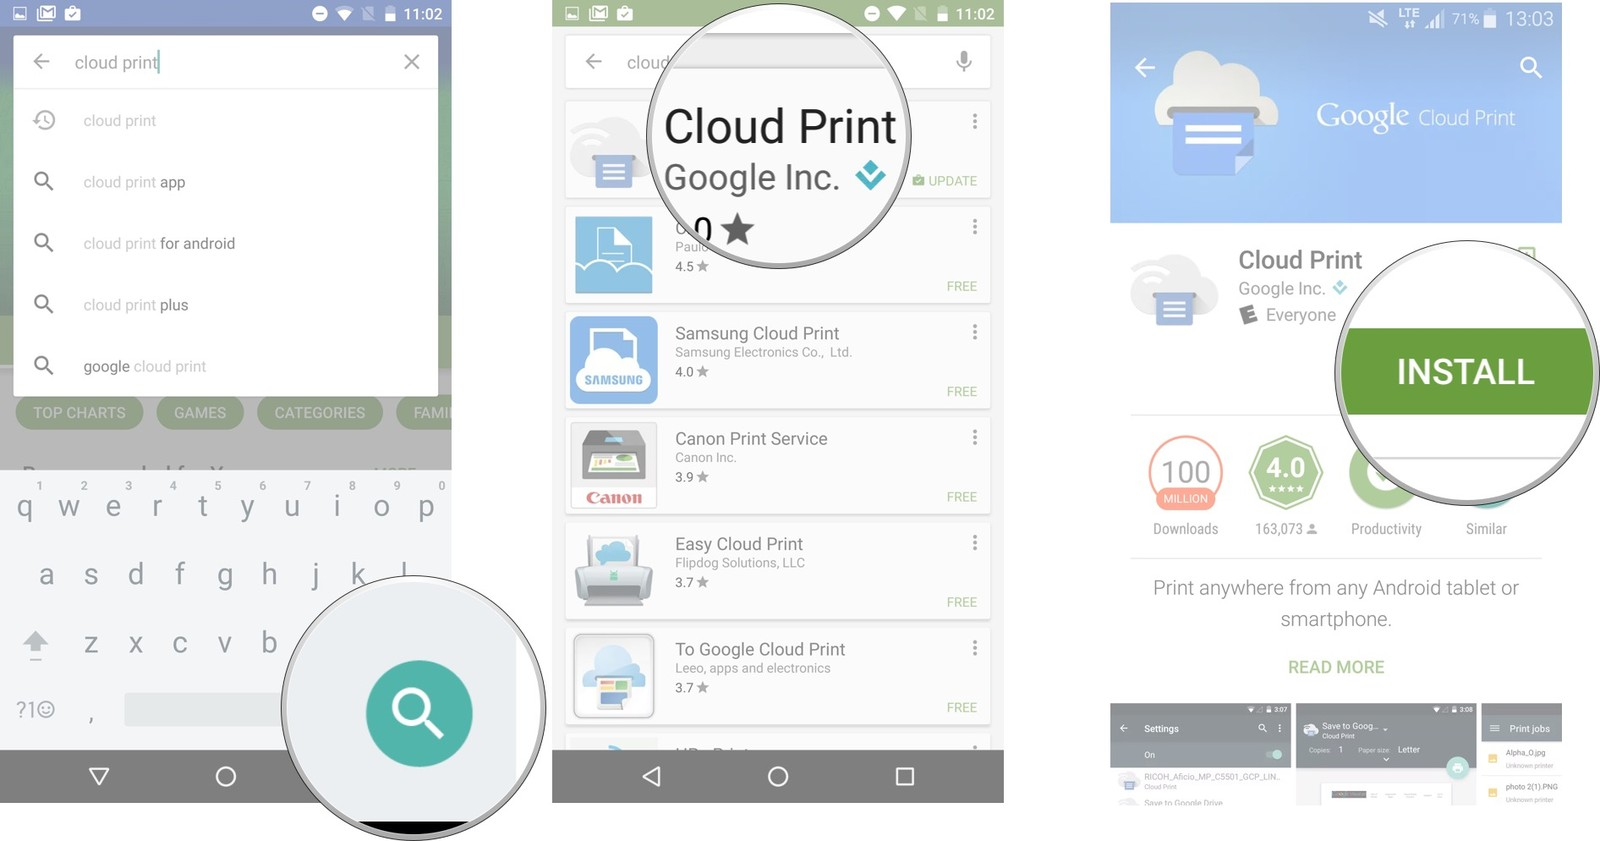 cloud print app for android